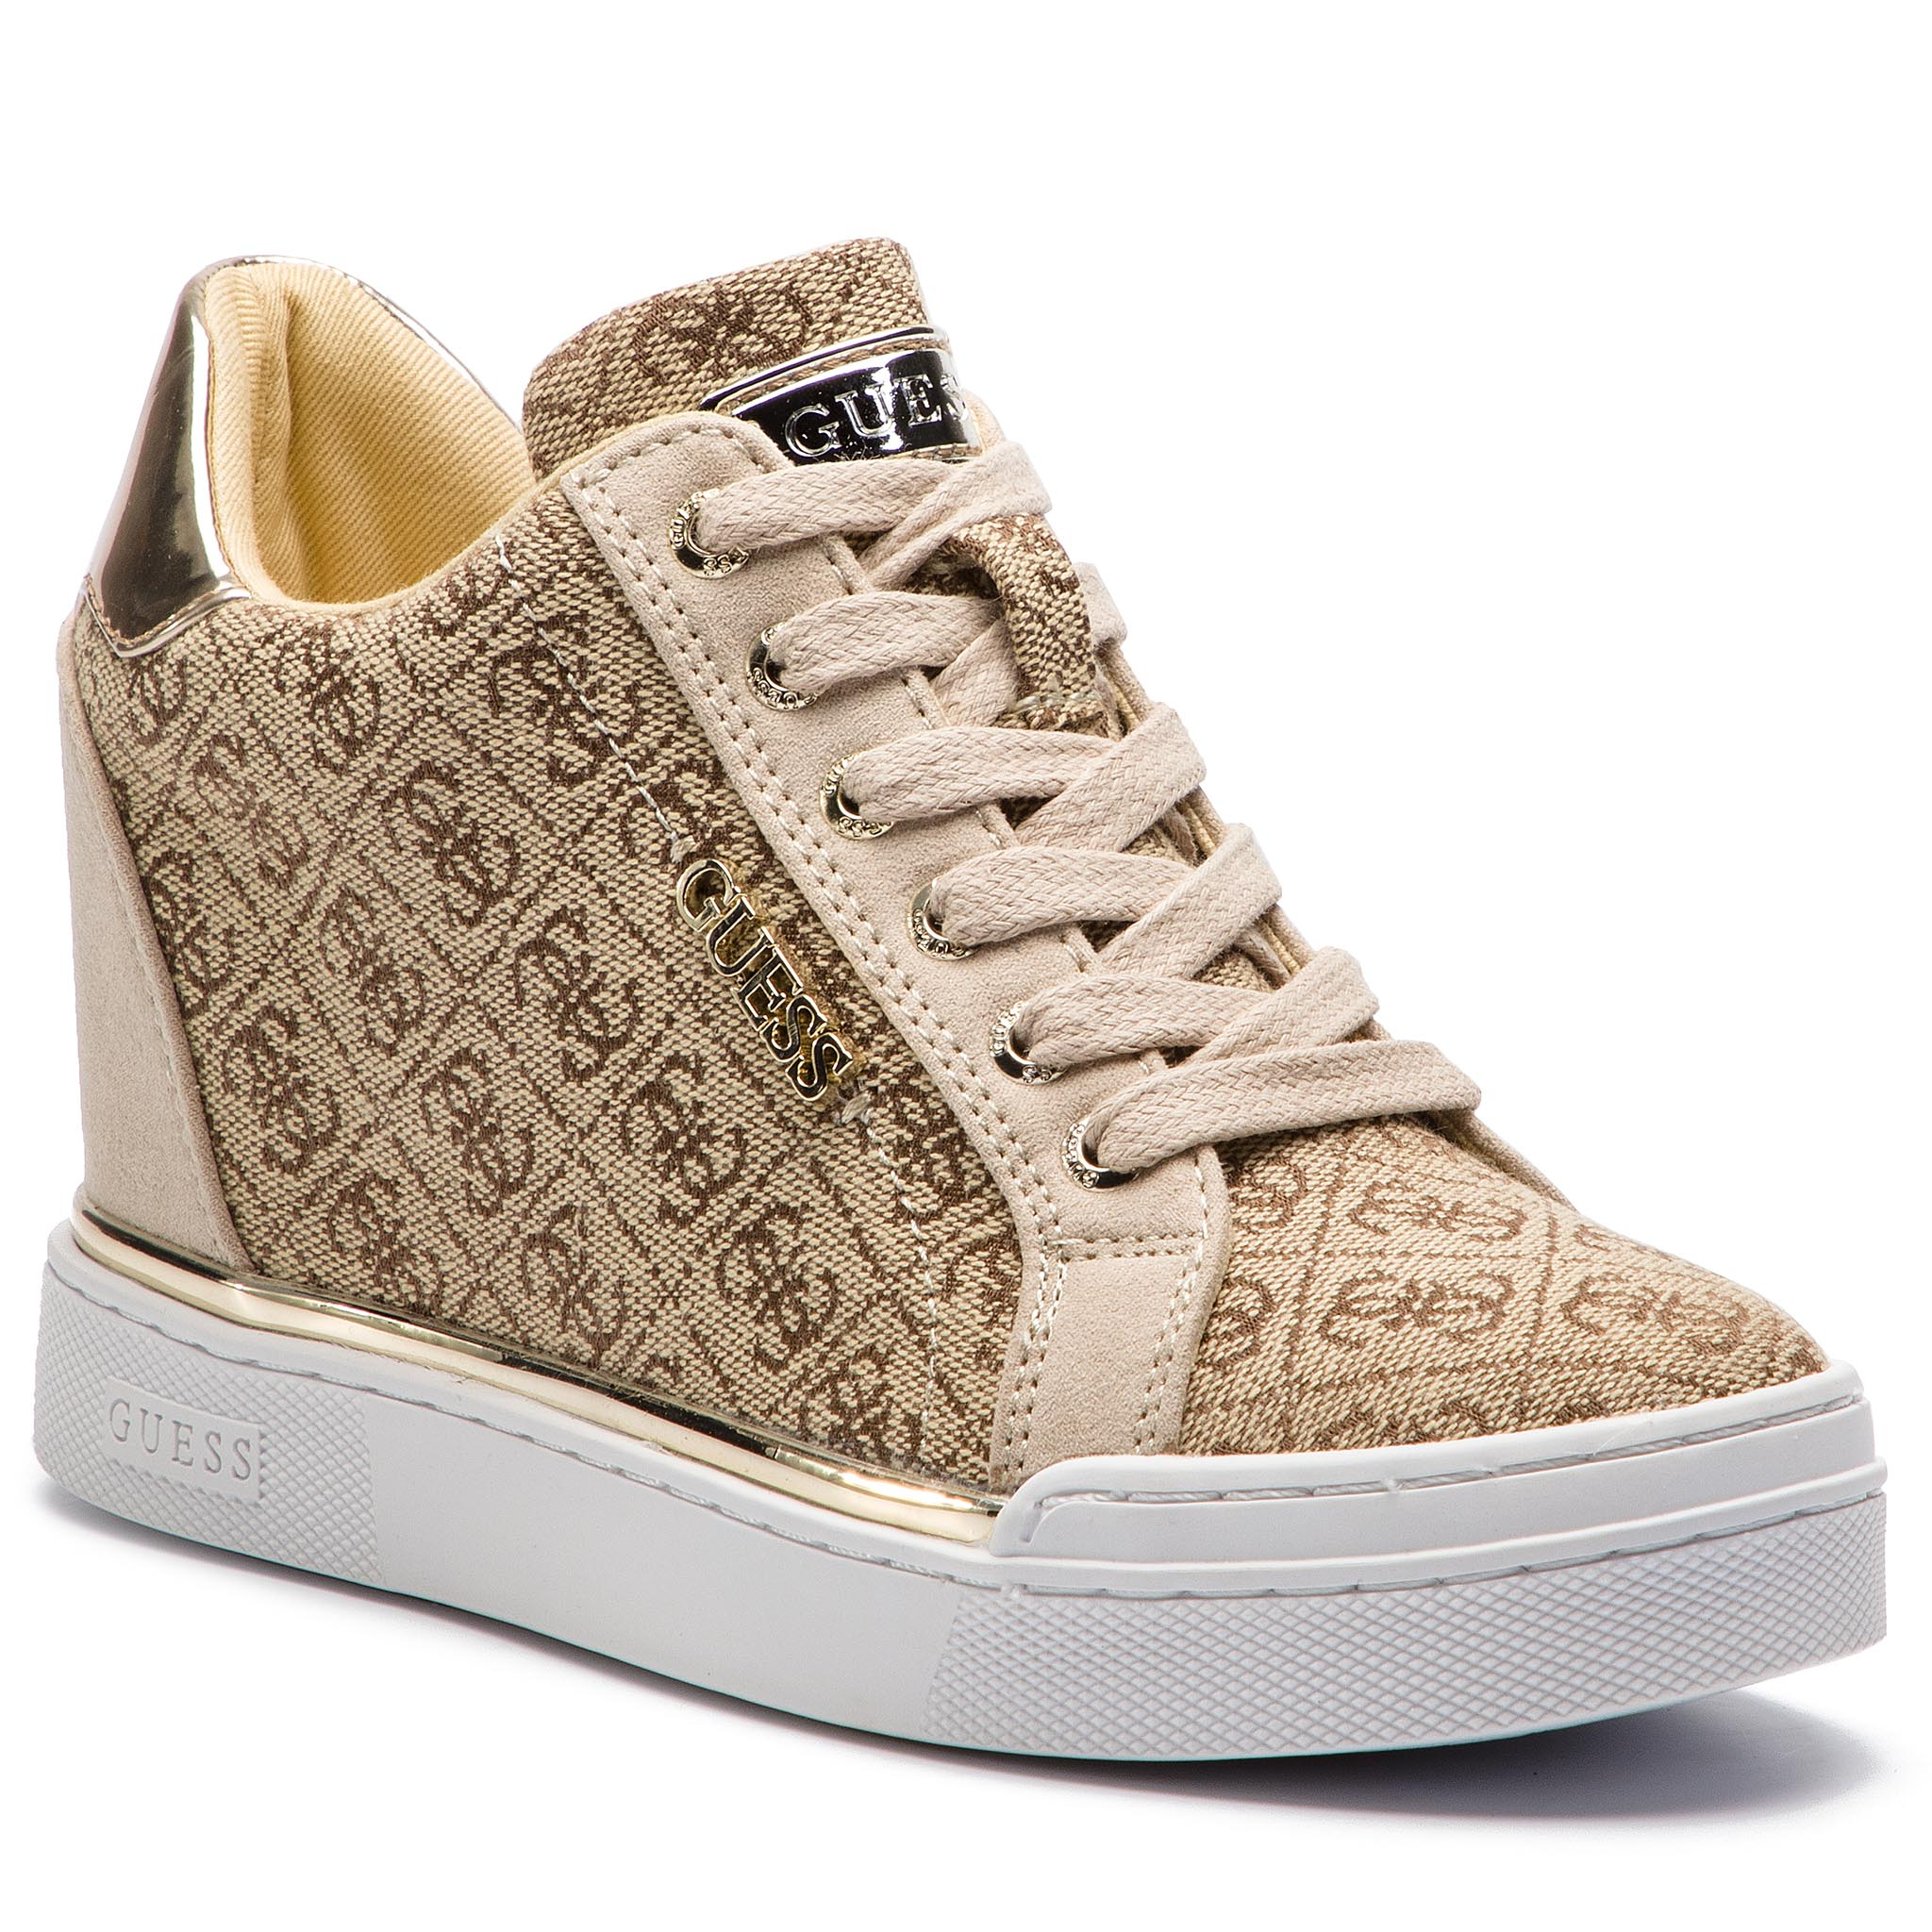 Sneakers GUESS - Flowurs2 FL5FW2 FAL12 BROWN